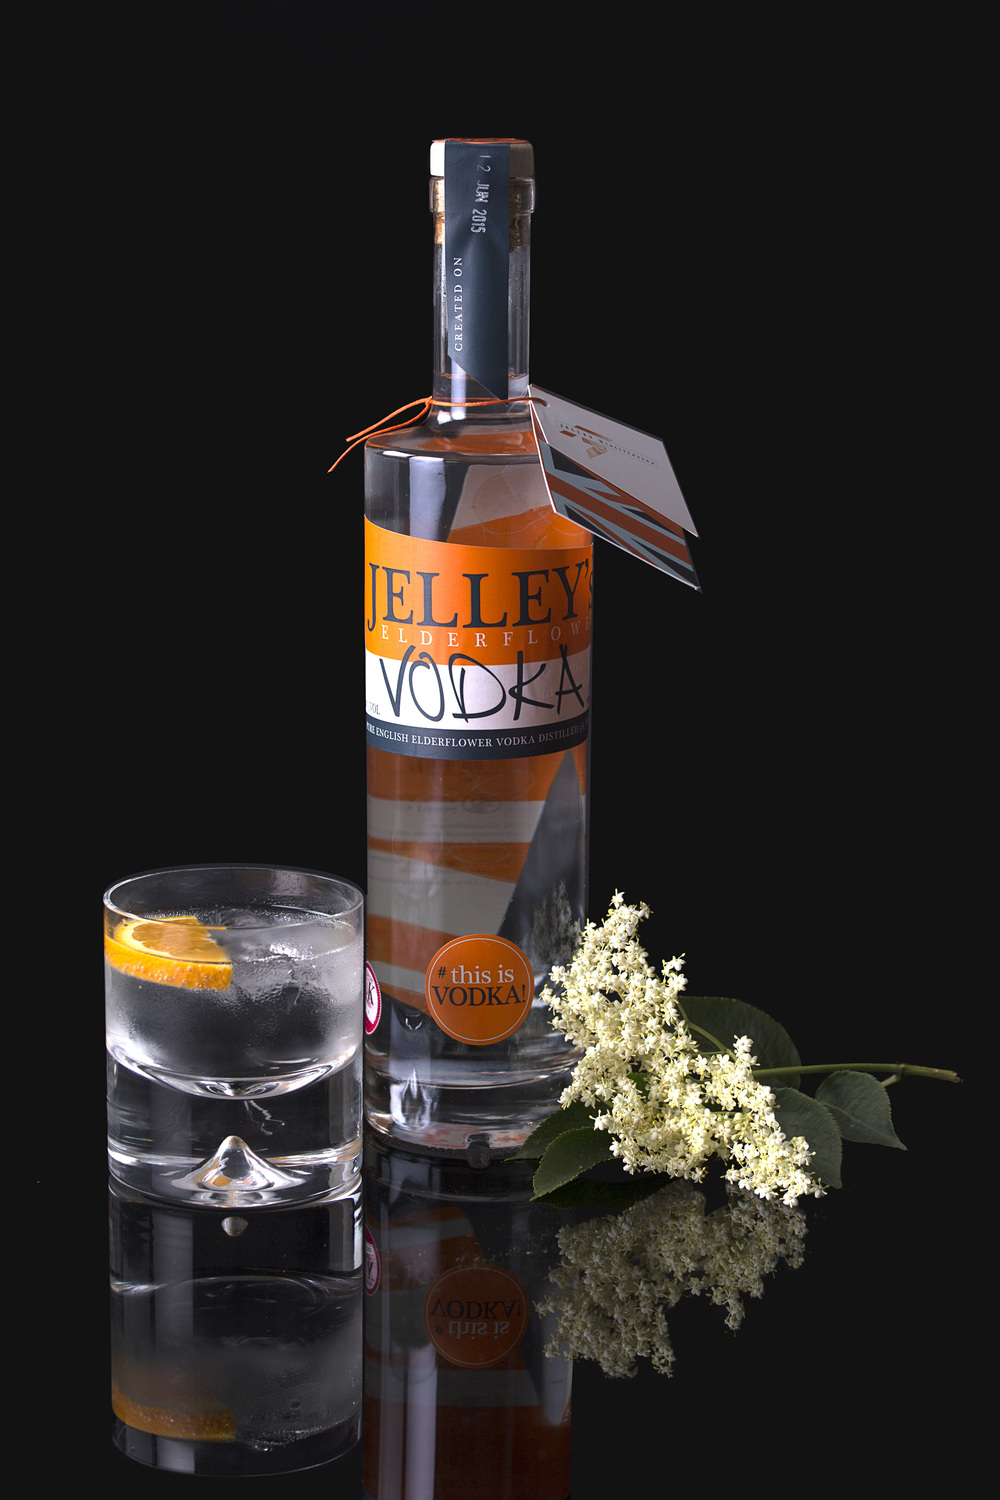 Jelley's Vodka bottle